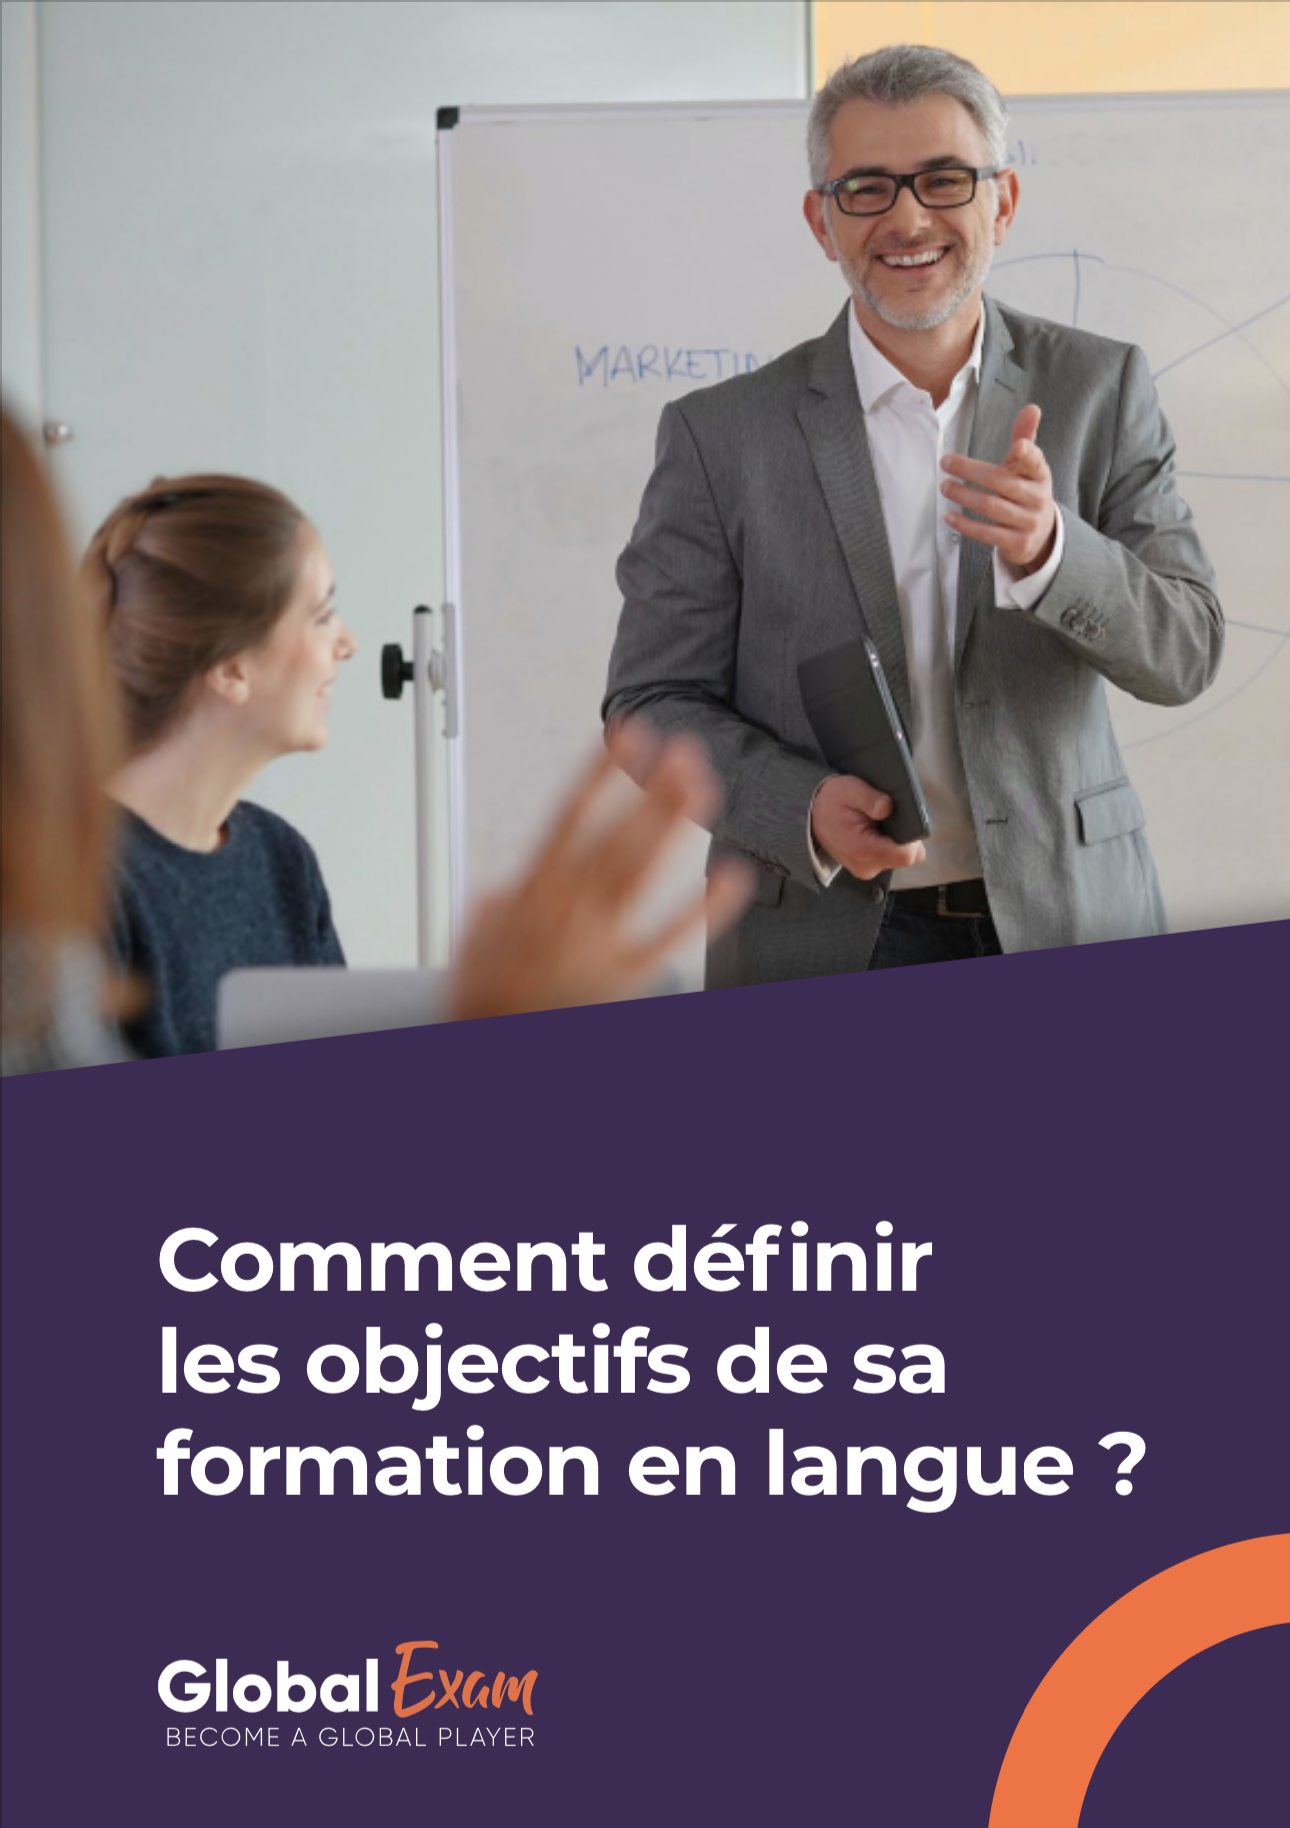 objectifs-formation-langues-formation